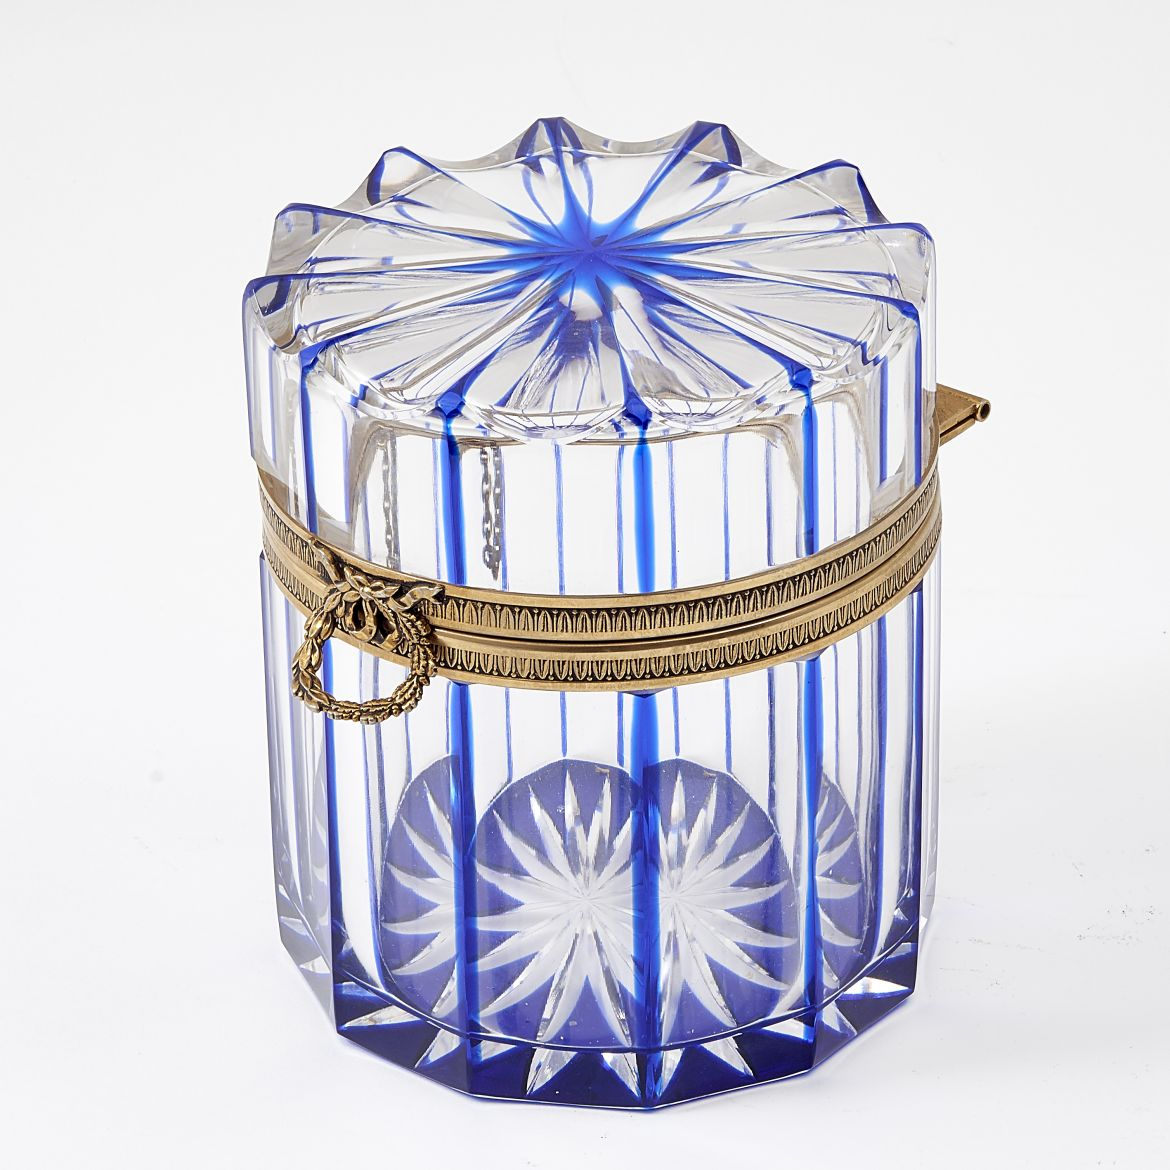 Circular Blue Cut Crystal Casket